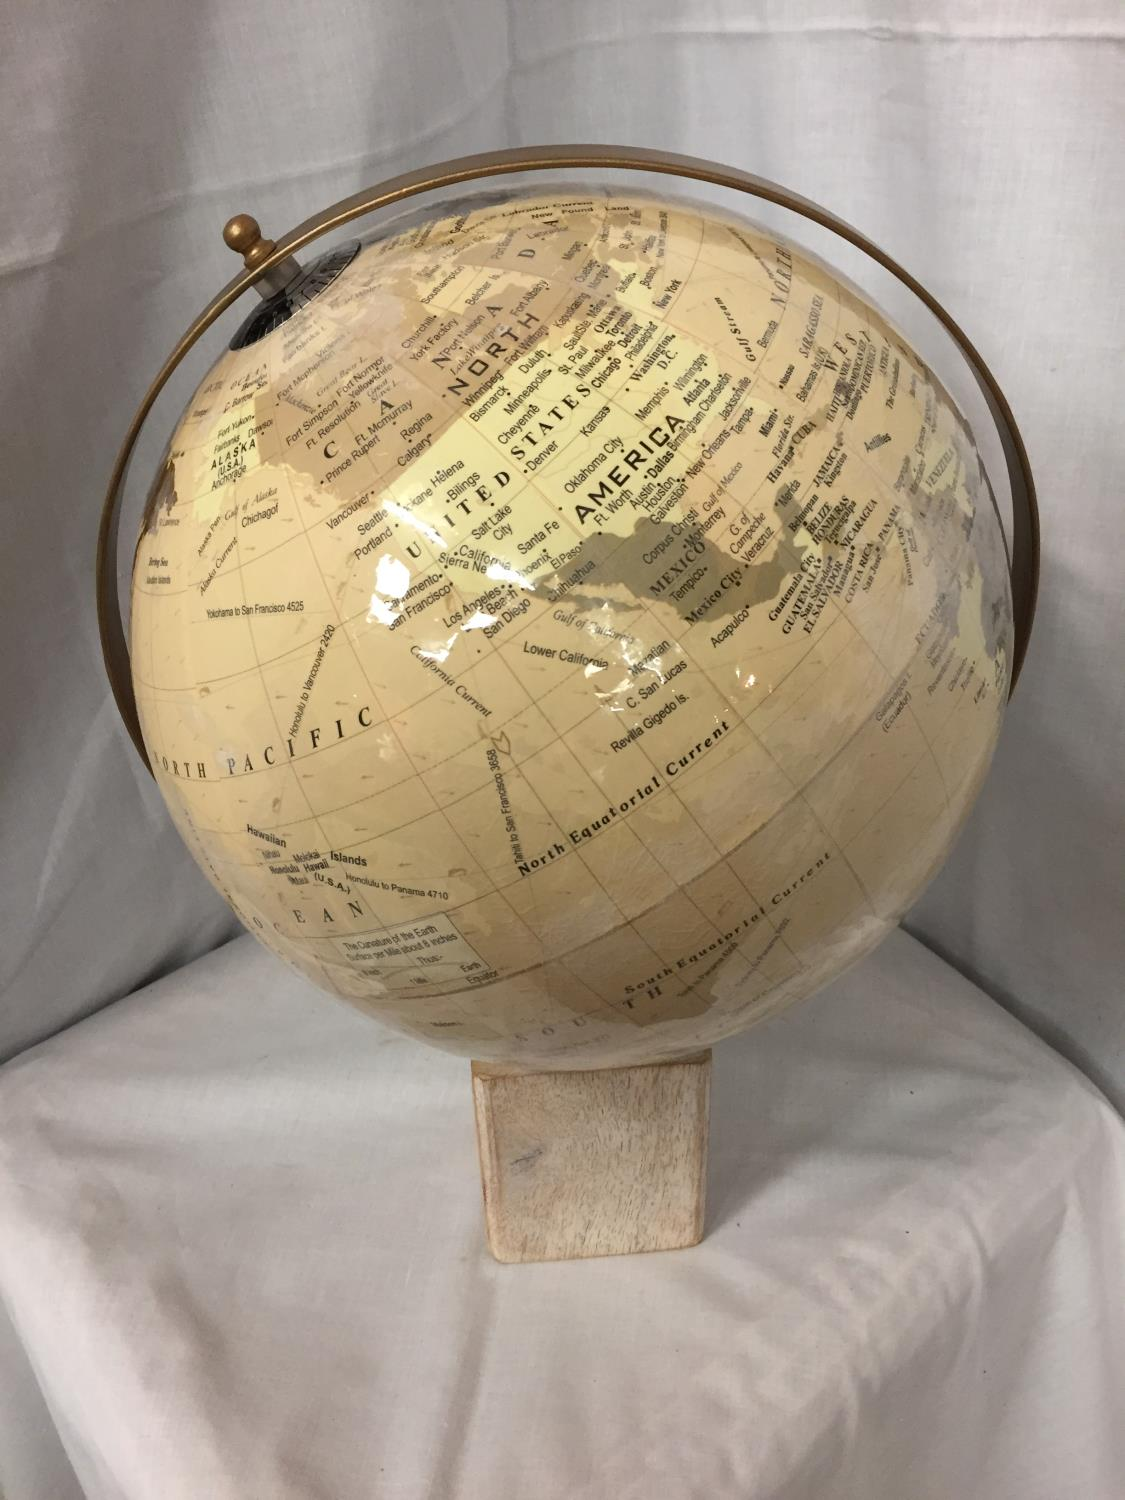 A LARGE GLOBE ON A WOODEN BASE - Image 2 of 3